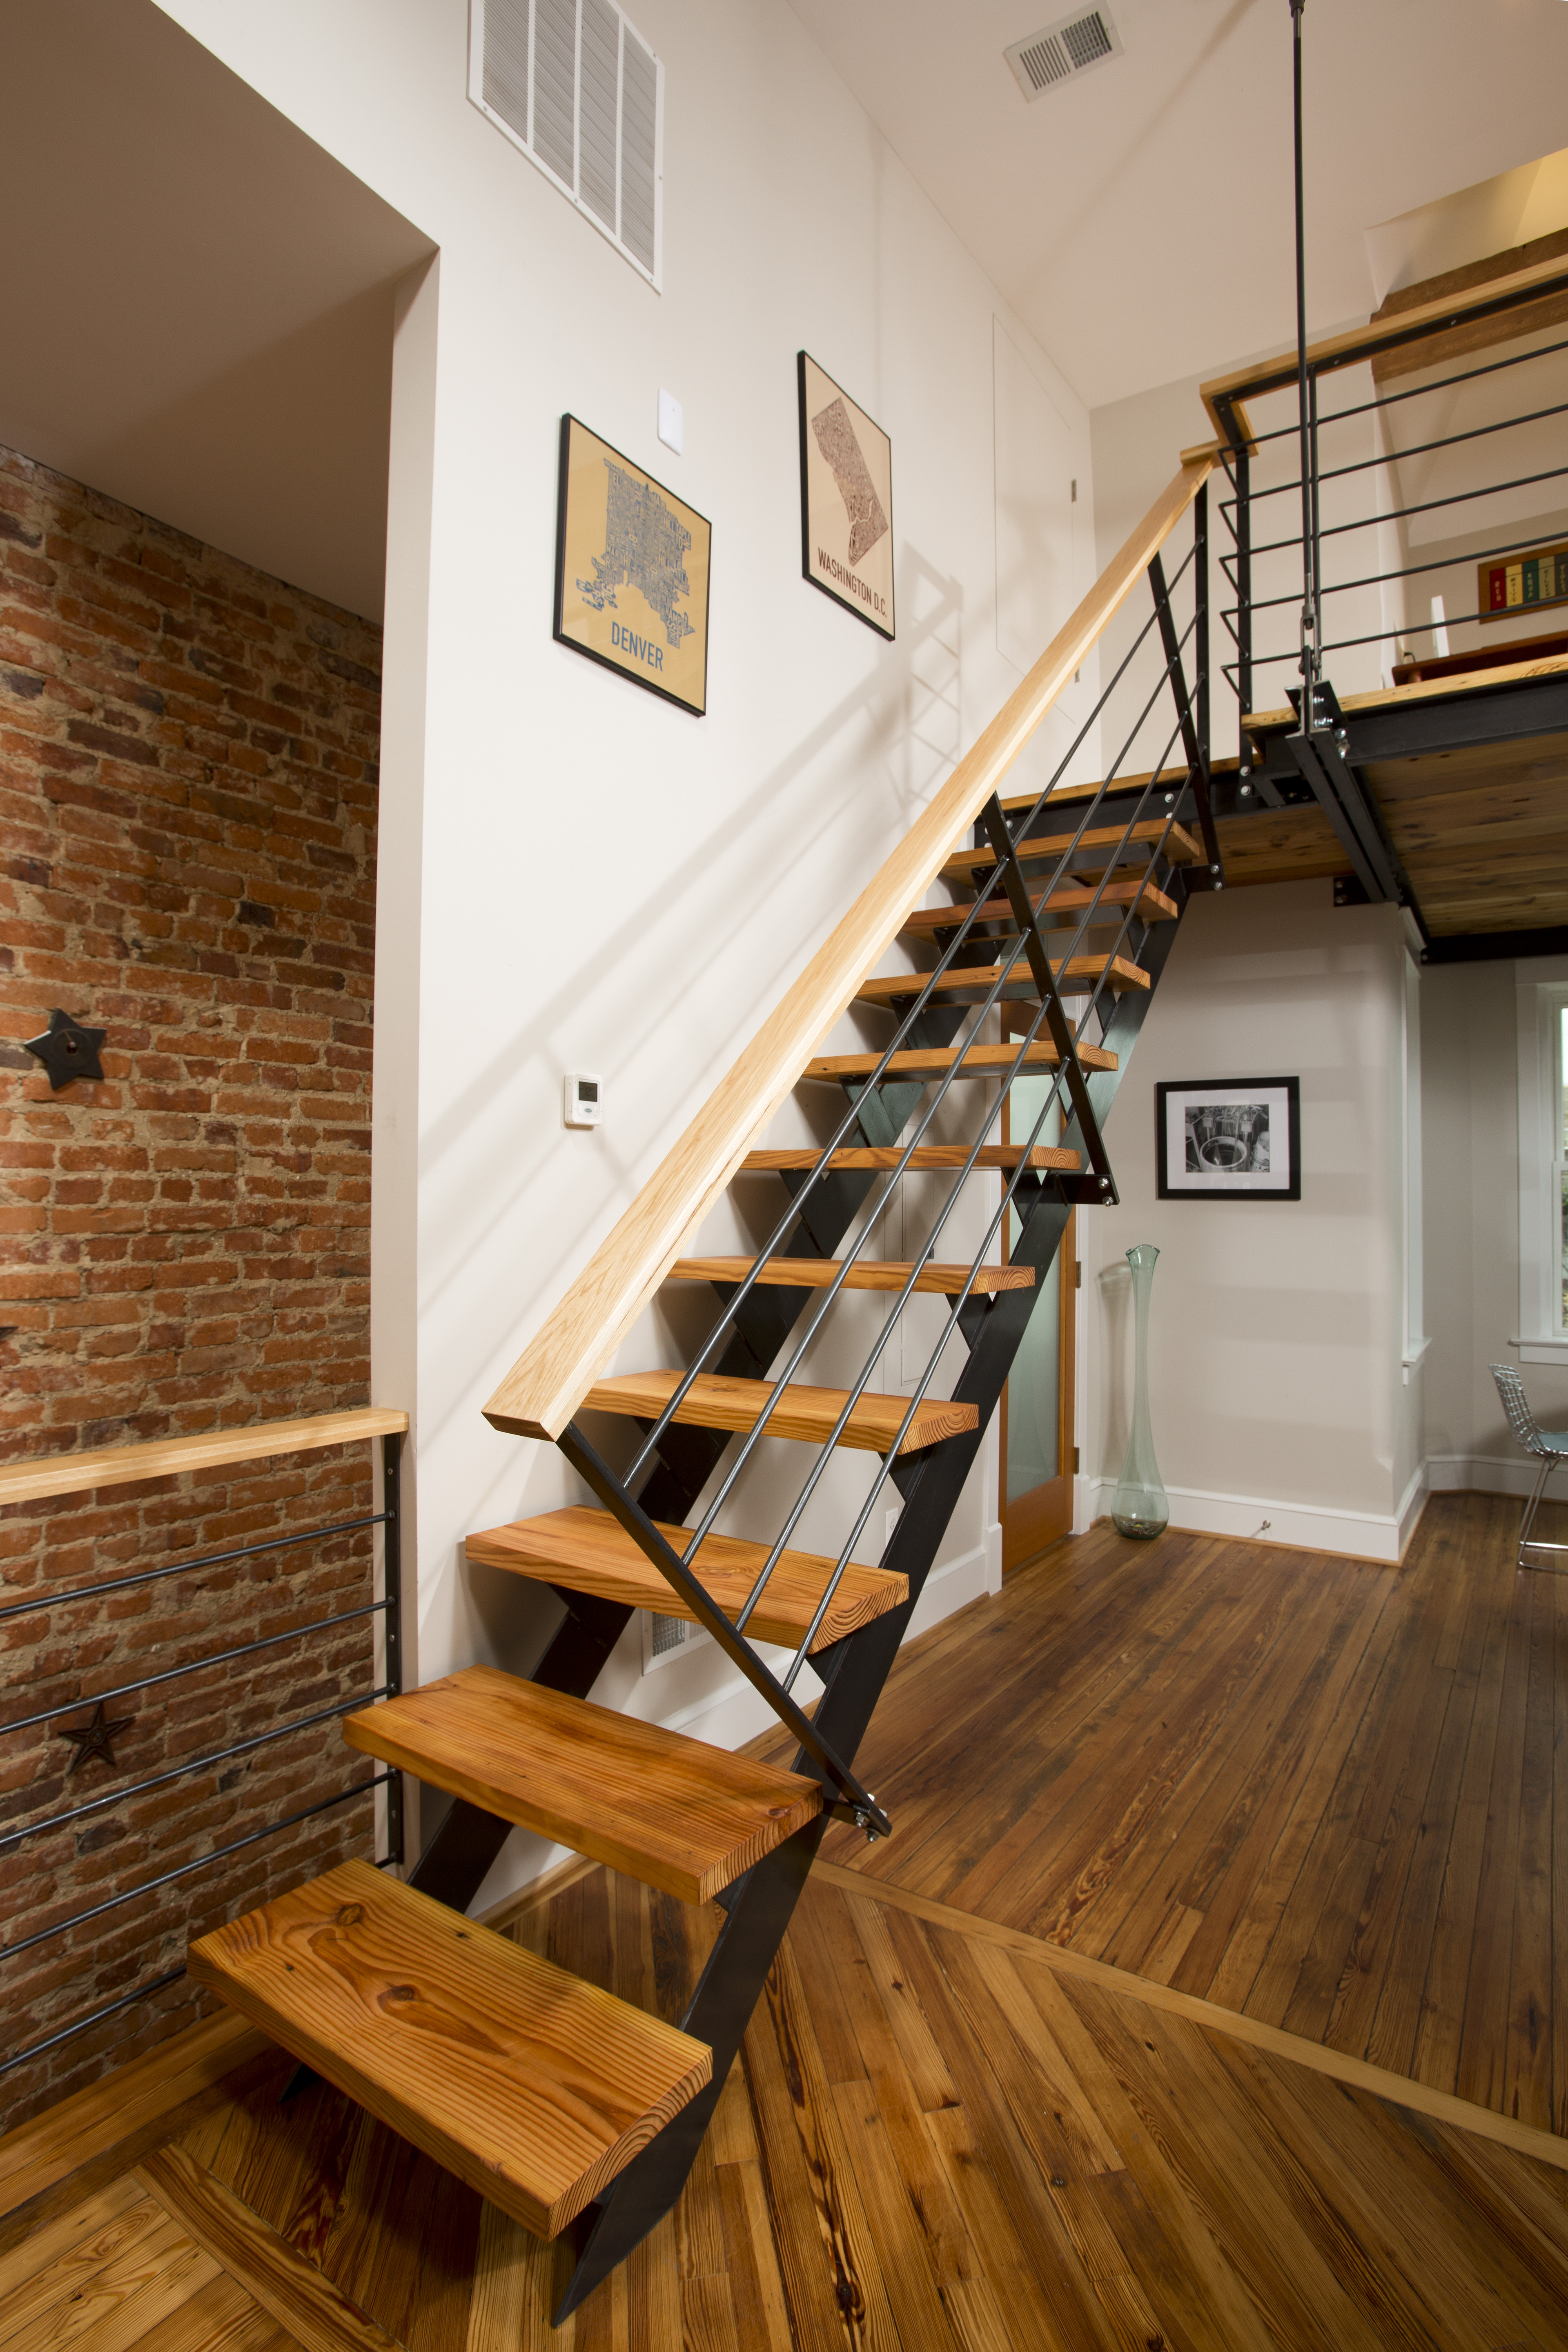 The frame of the open staircase going up to the loft keeps the space feeling open. Pine footrests match the wood throughout the condo.